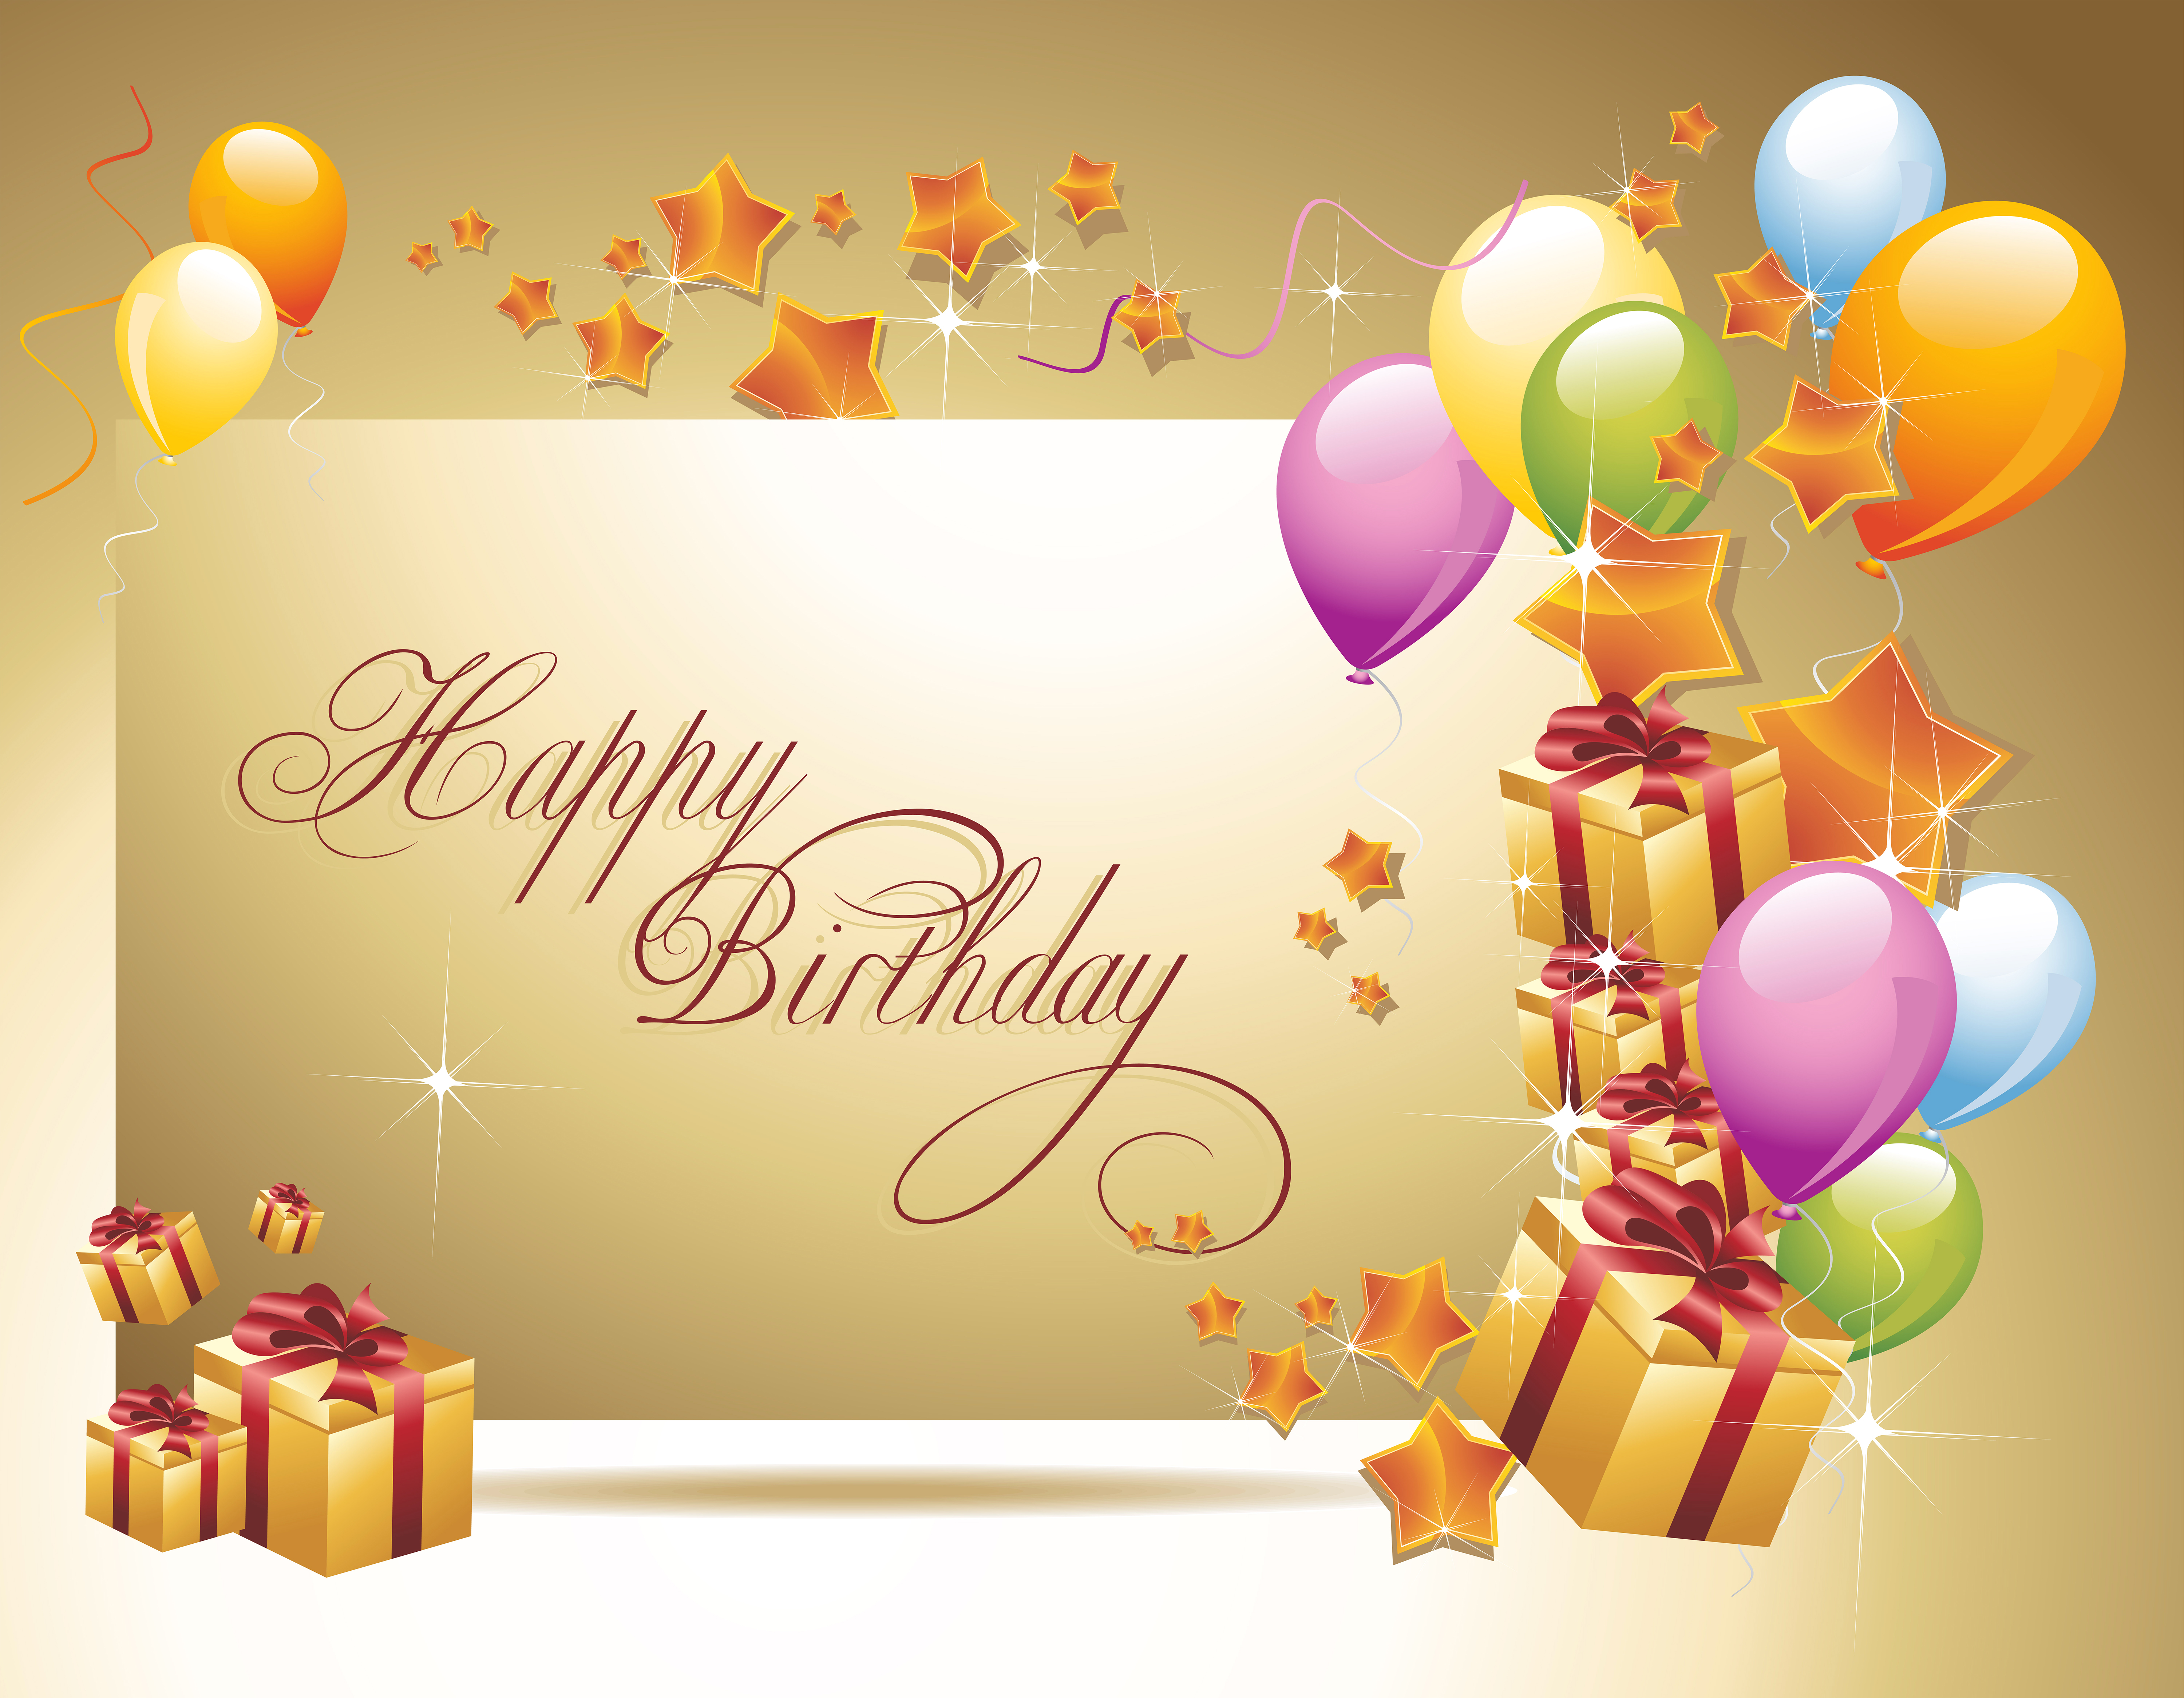 Happy Birthday Background with Gifts and Balloons Gallery 6000x4666